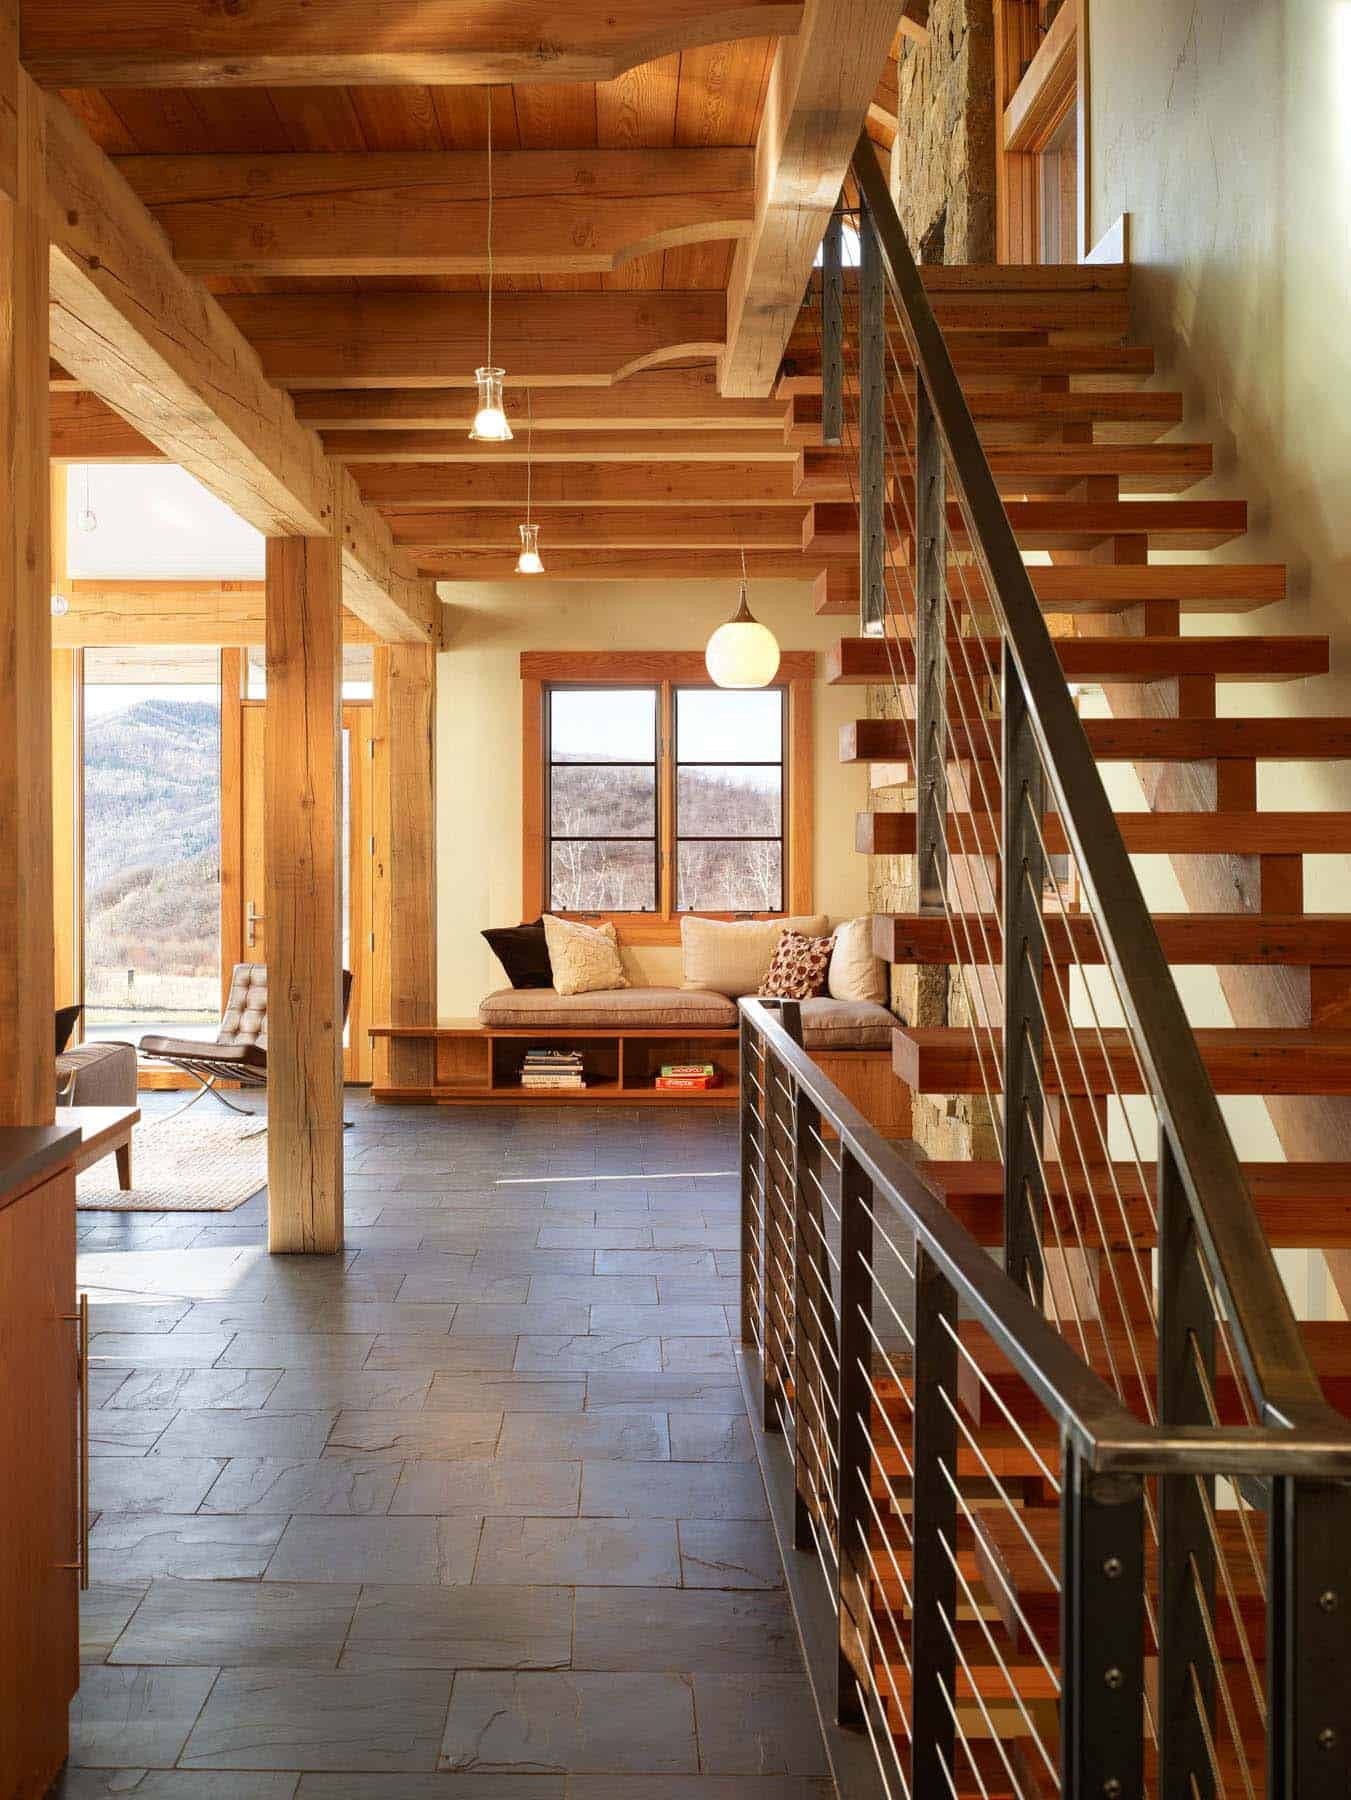 Contemporary Eco-Friendly Home-Robert Hawkins Architects-11-1 Kindesign